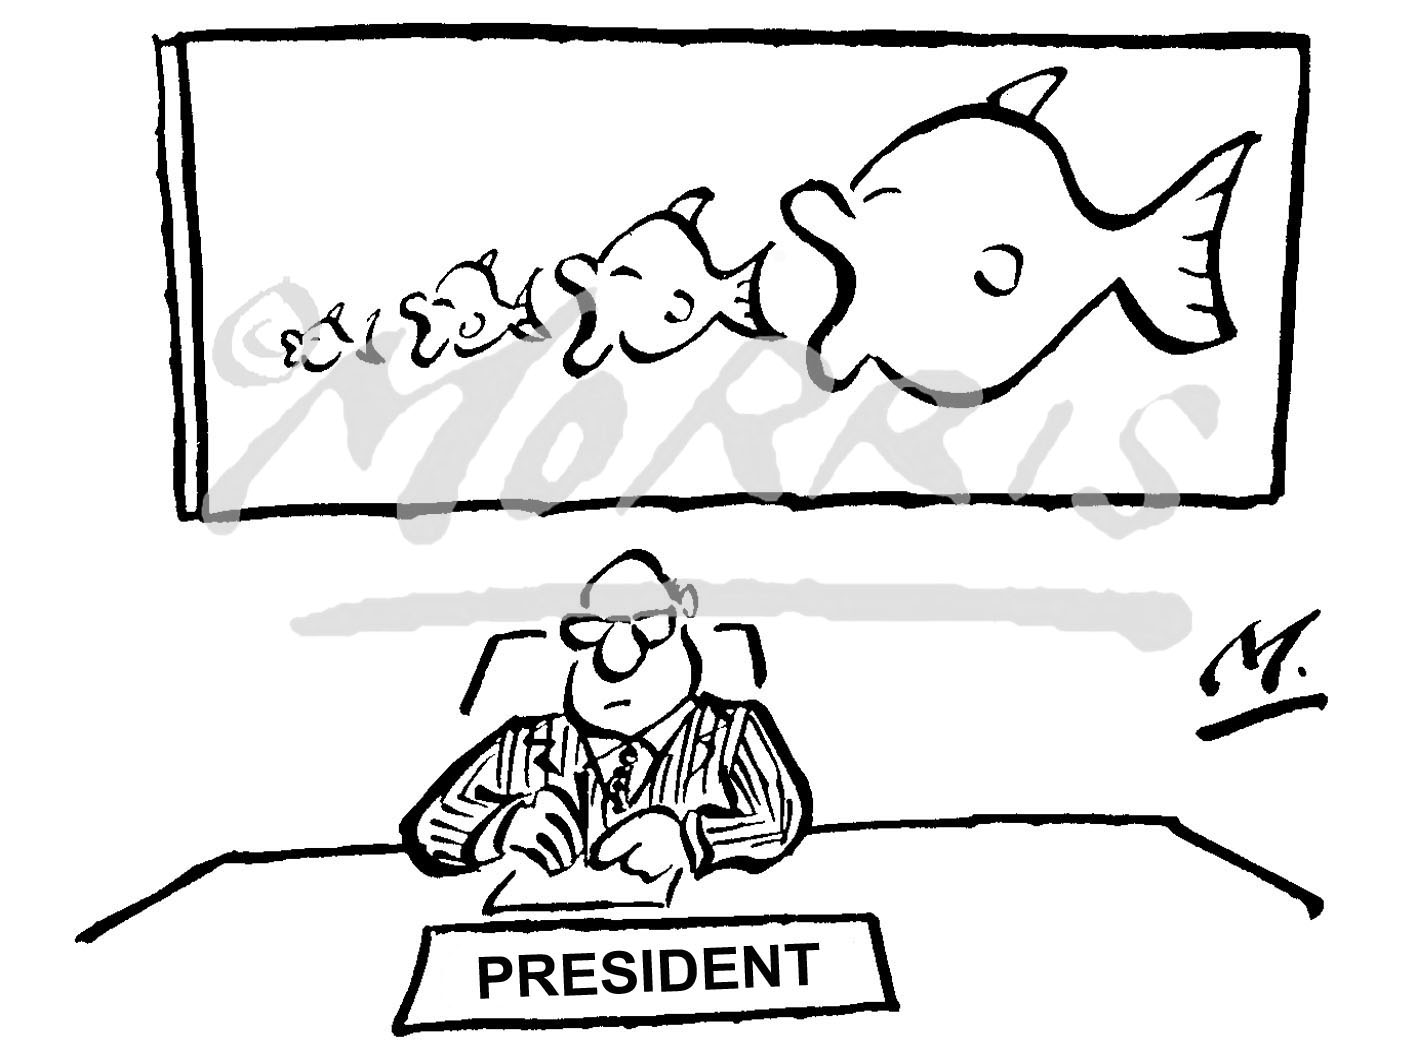 President takeover cartoon Ref: 1474bwus